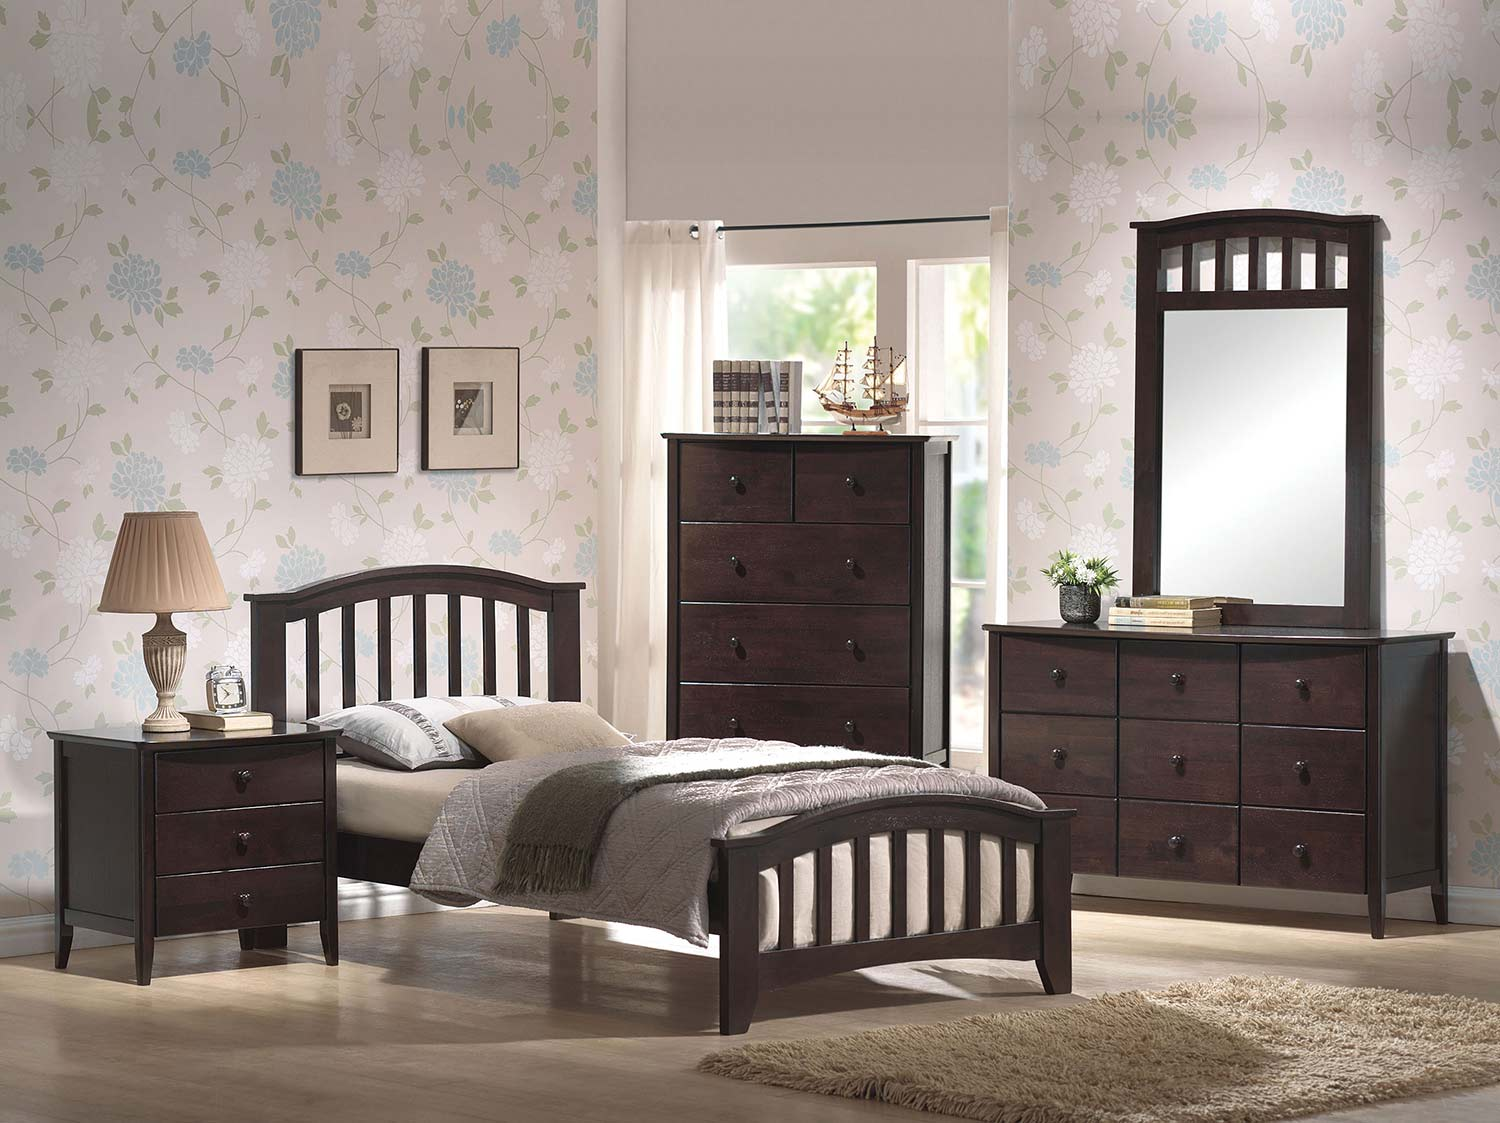 Acme San Marino Bedroom Set - Dark Walnut